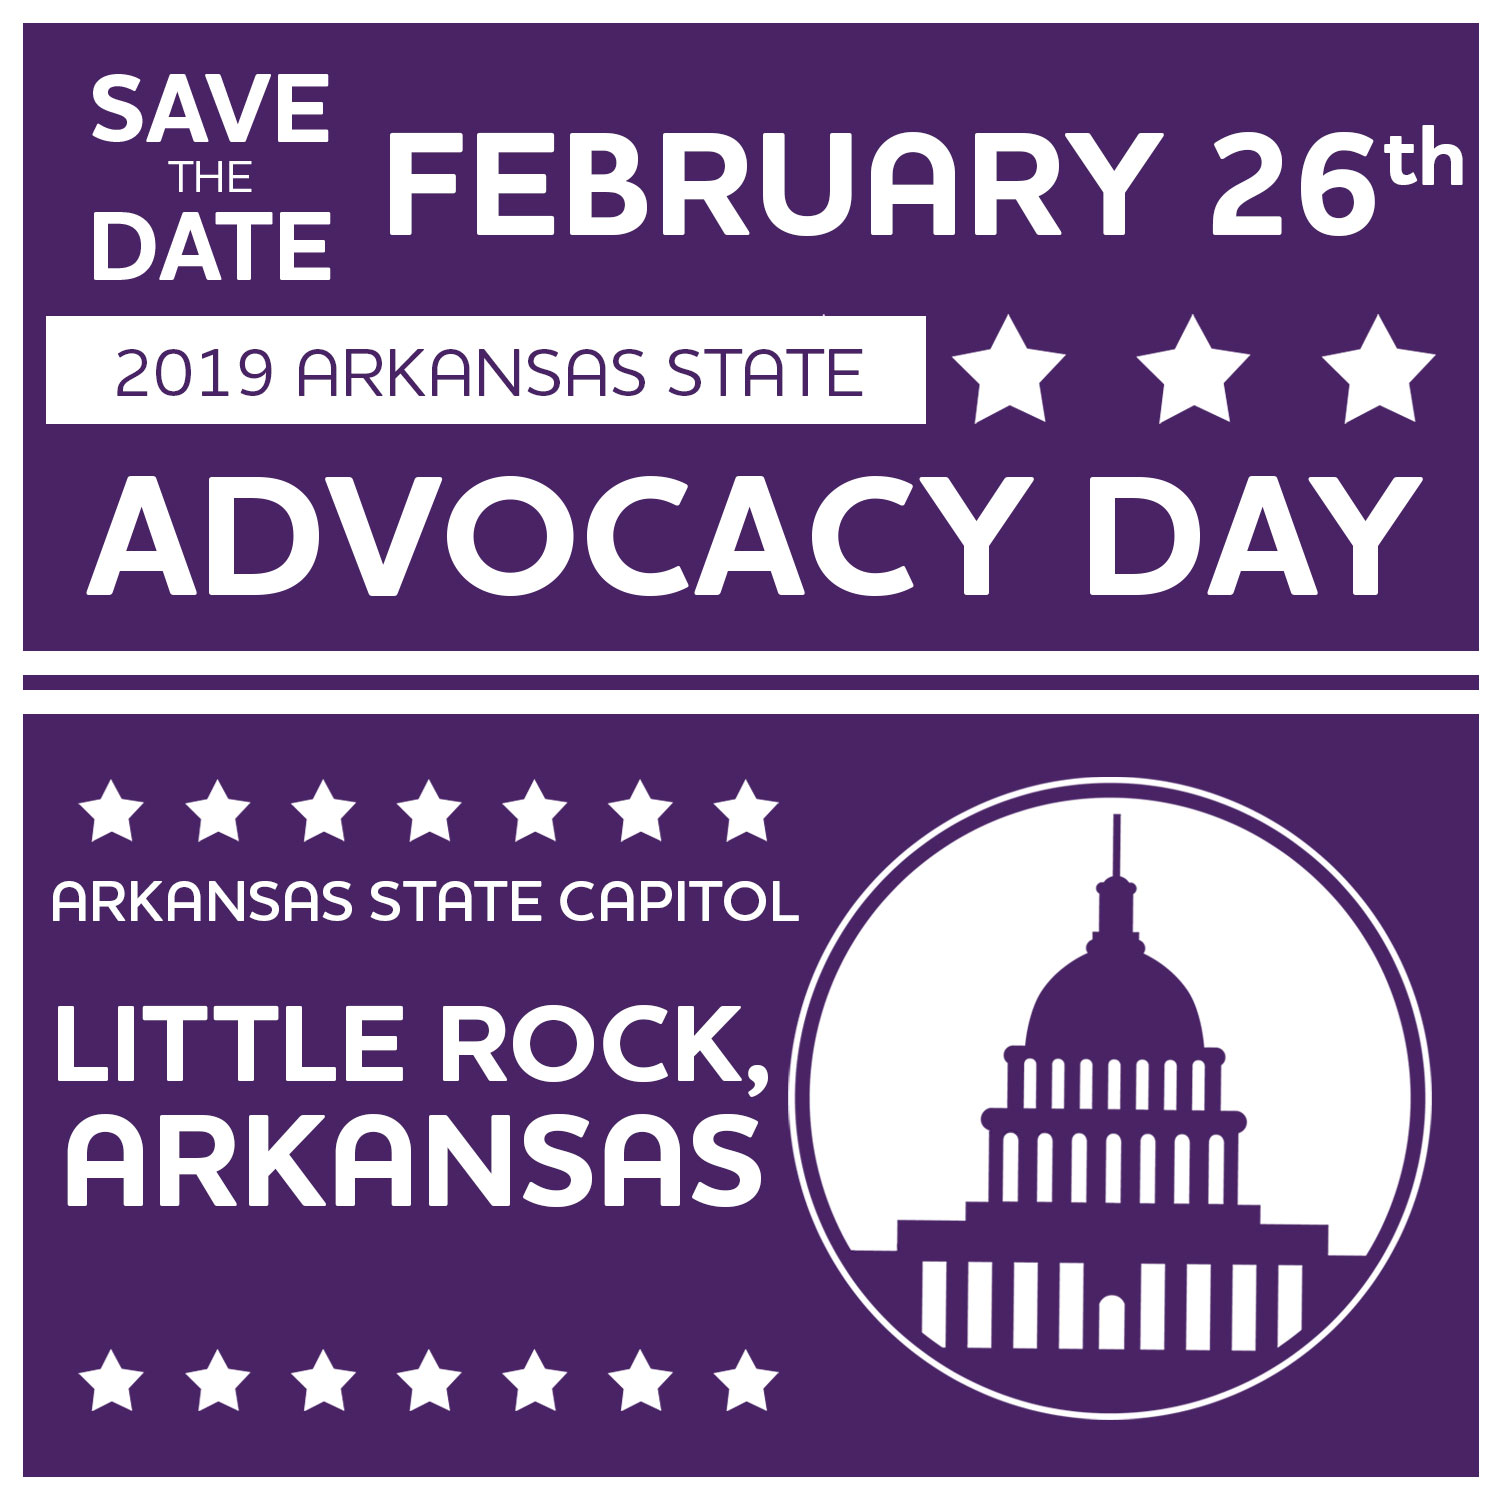 Arkansas Advocacy Day 2019